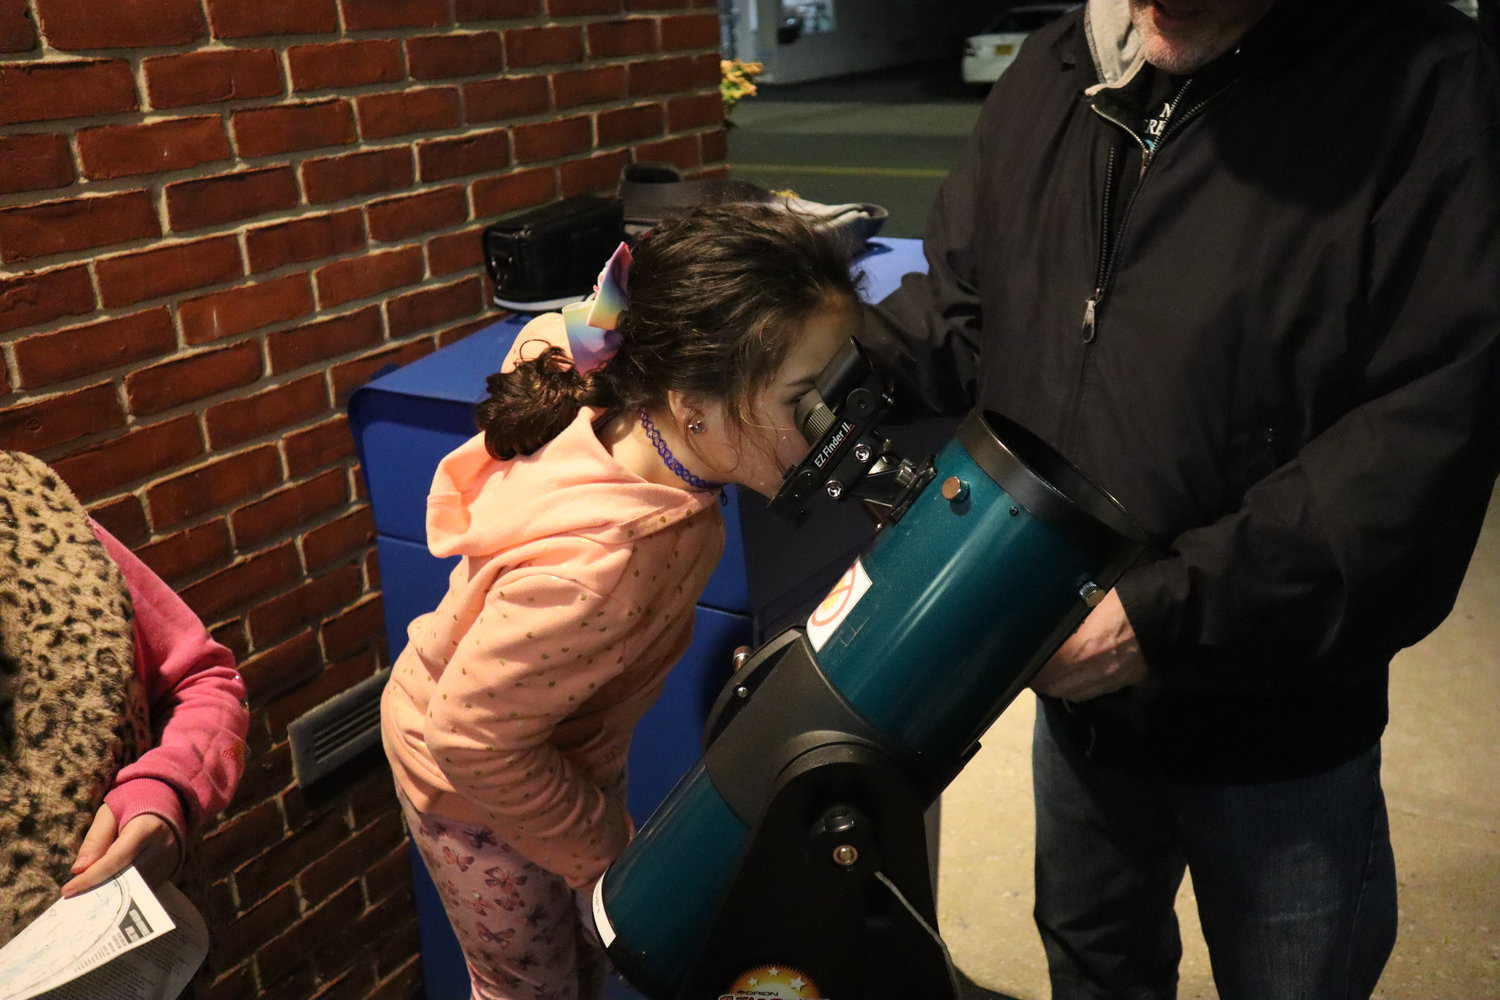 mckayla was excited to see the moon through the Bellmore Library's new telescope. Now she's just waiting to borrow it, she said.